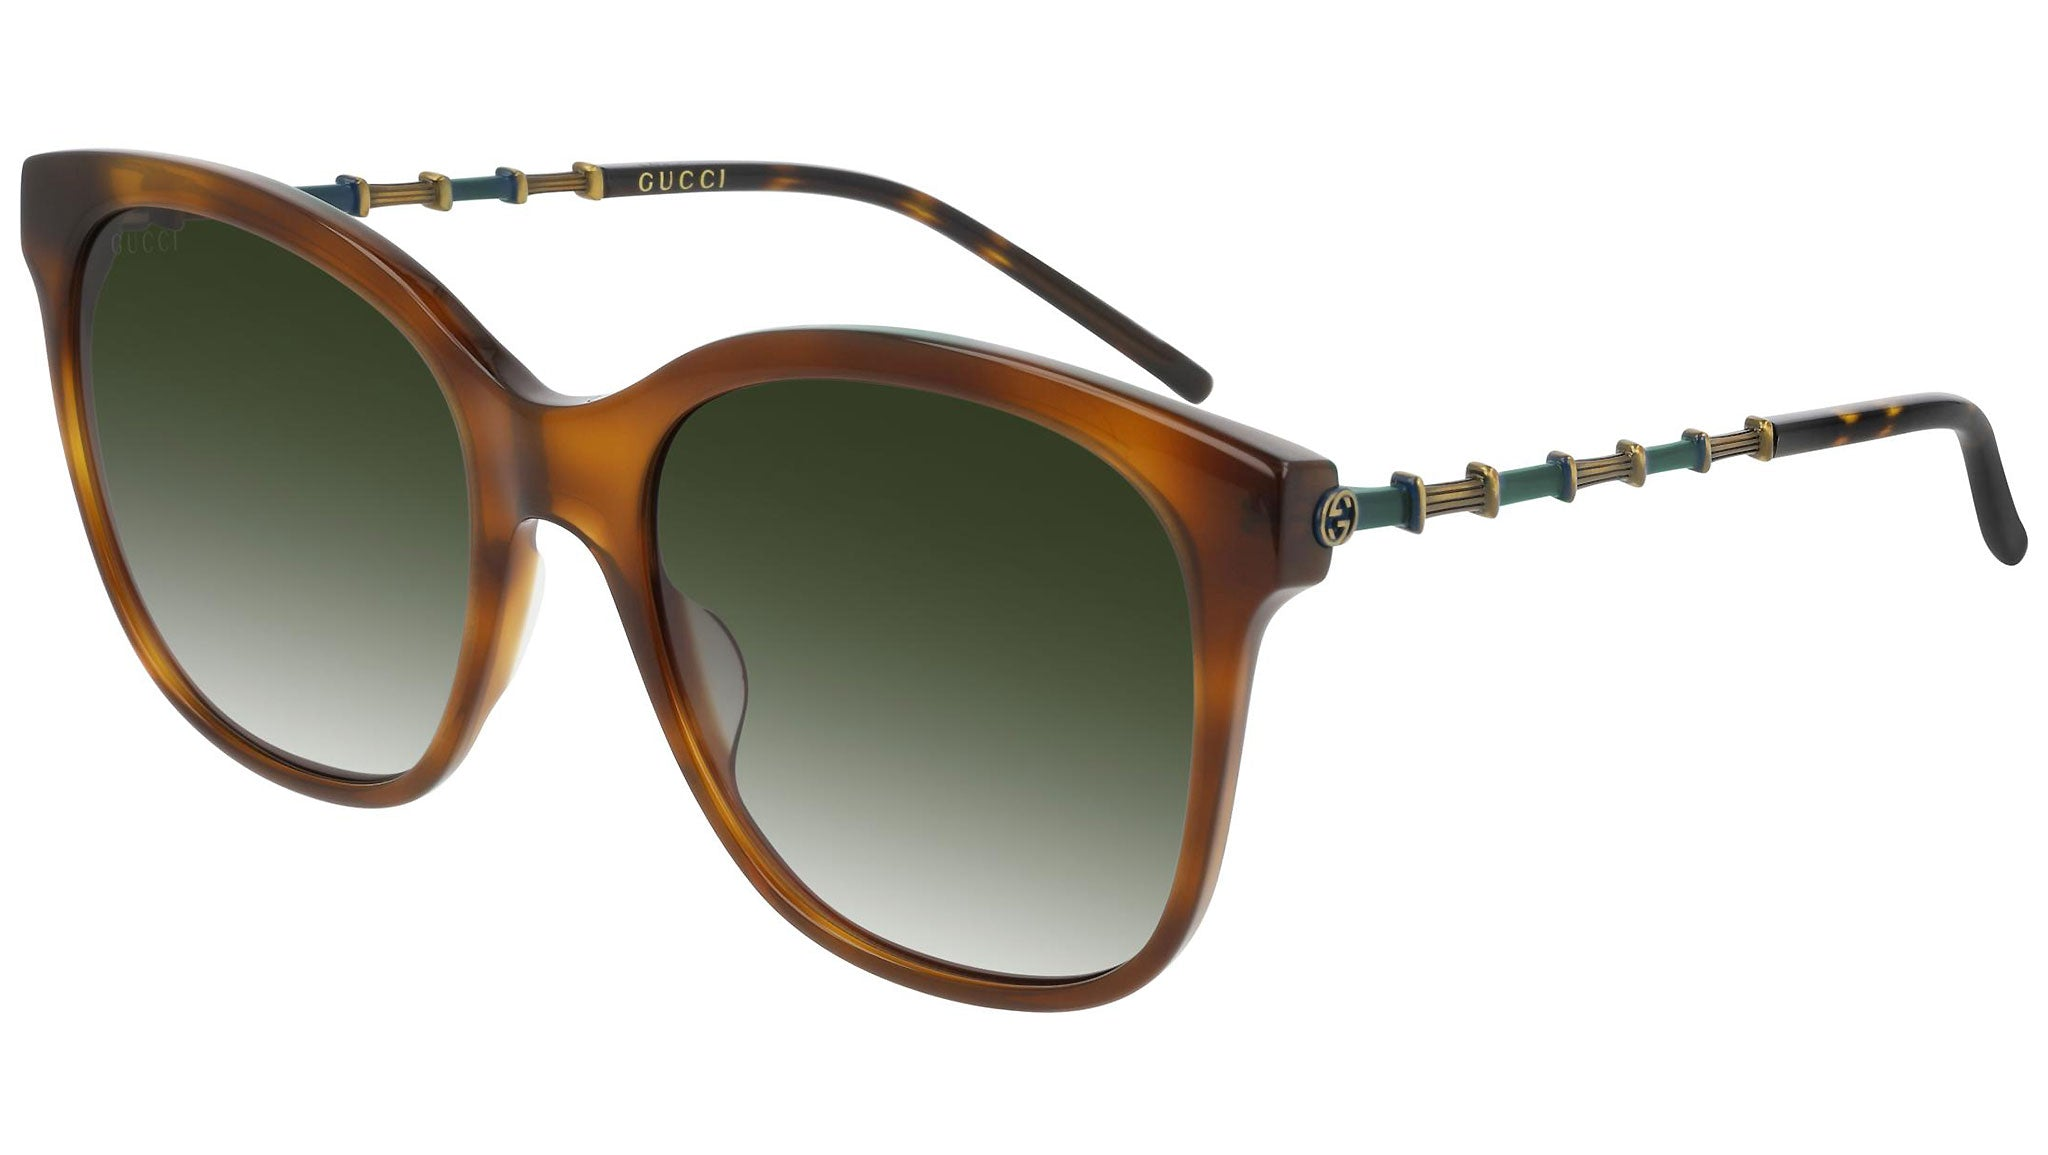 GG0654S brown havana and green